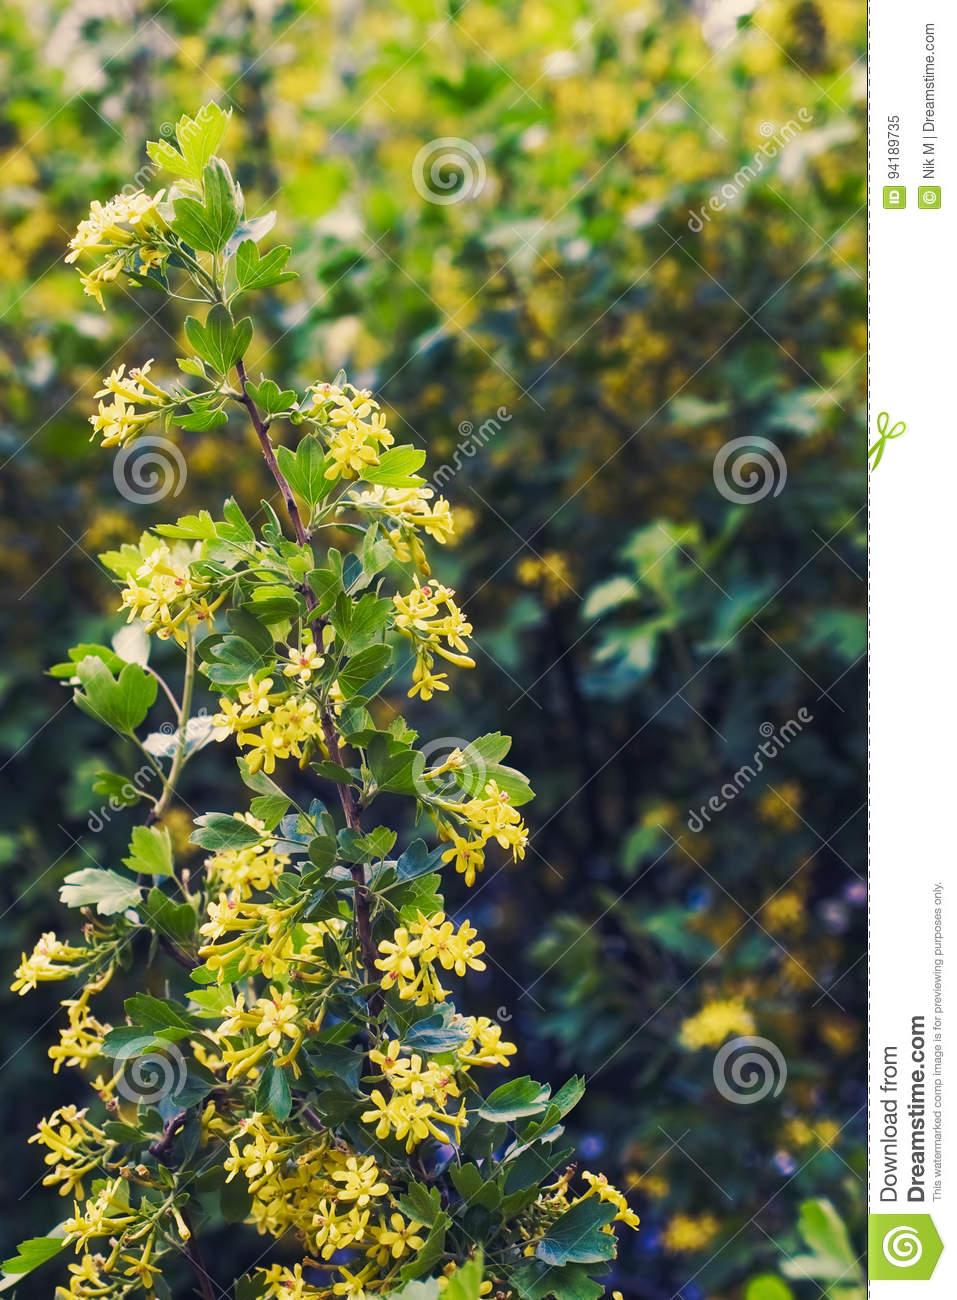 Golden buffalo currant ribes aureum stock image image of download golden buffalo currant ribes aureum stock image image of agriculture aureum 94189735 mightylinksfo